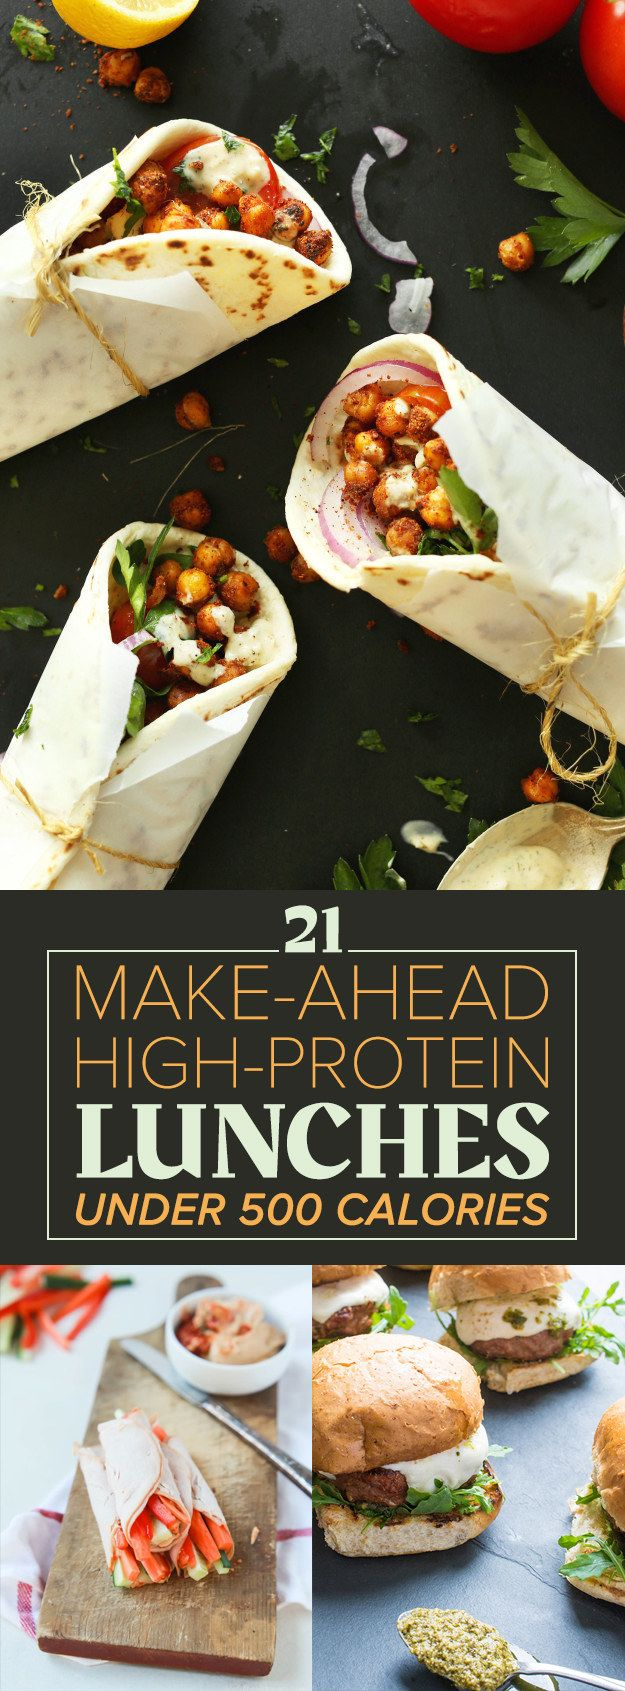 21 High-Protein Lunches Under 500 Calories | Recipes ...